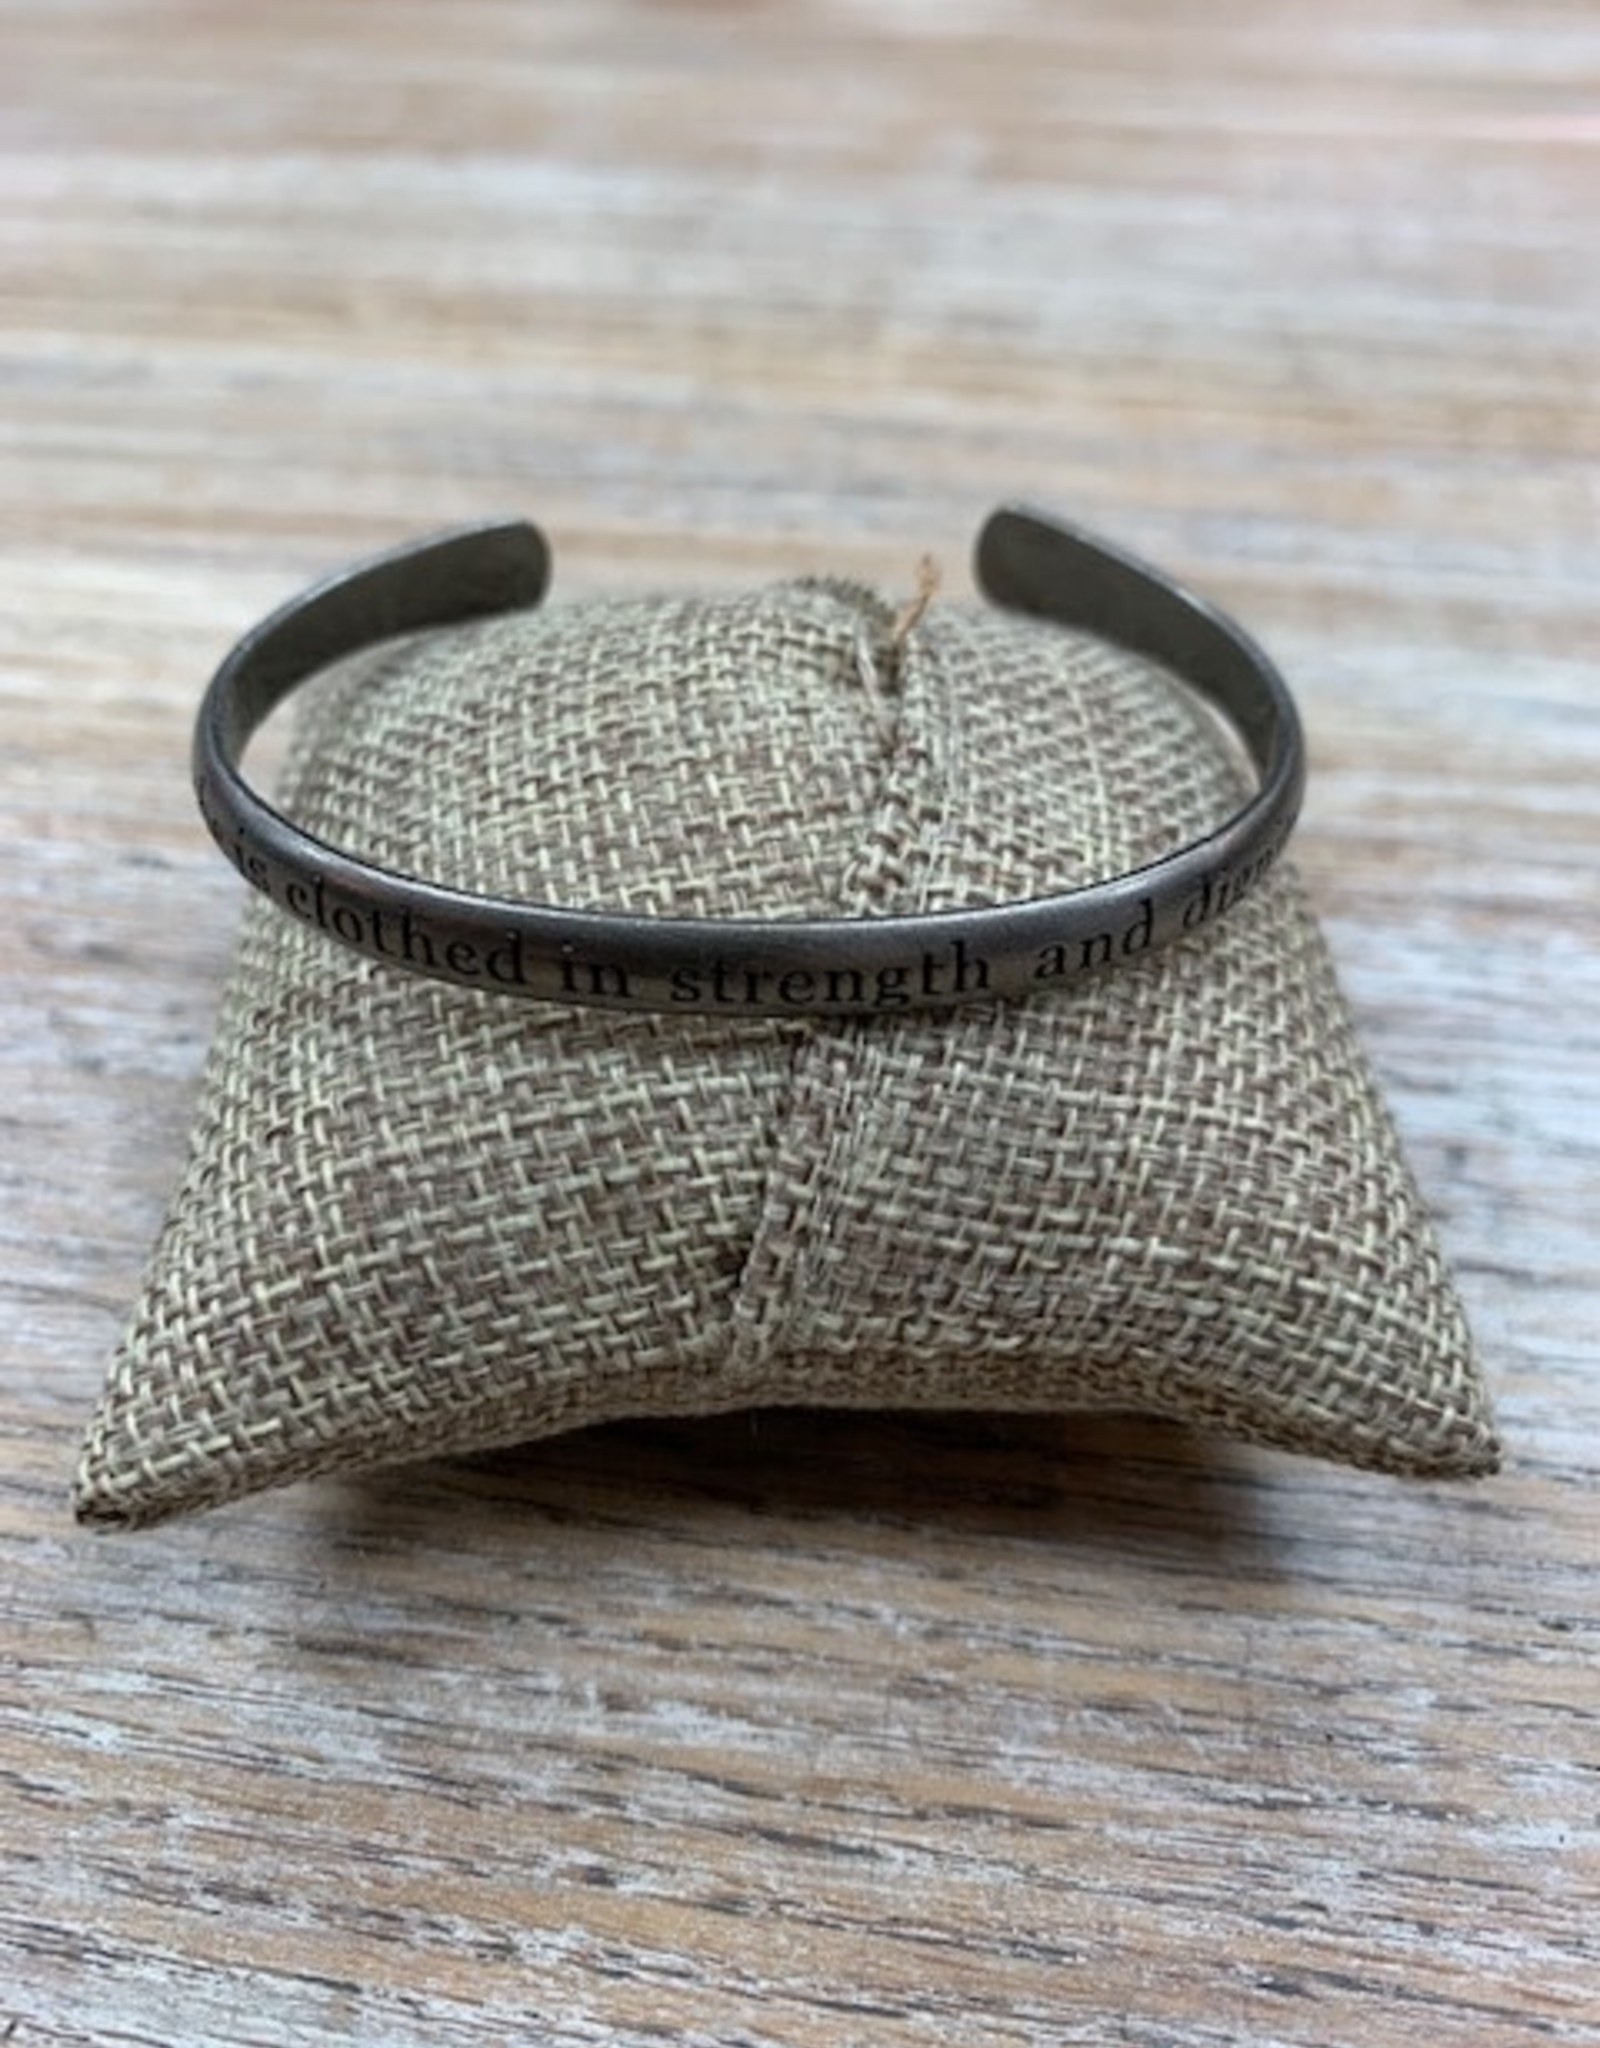 Jewelry She is Clothed Silver Cuff Bracelet